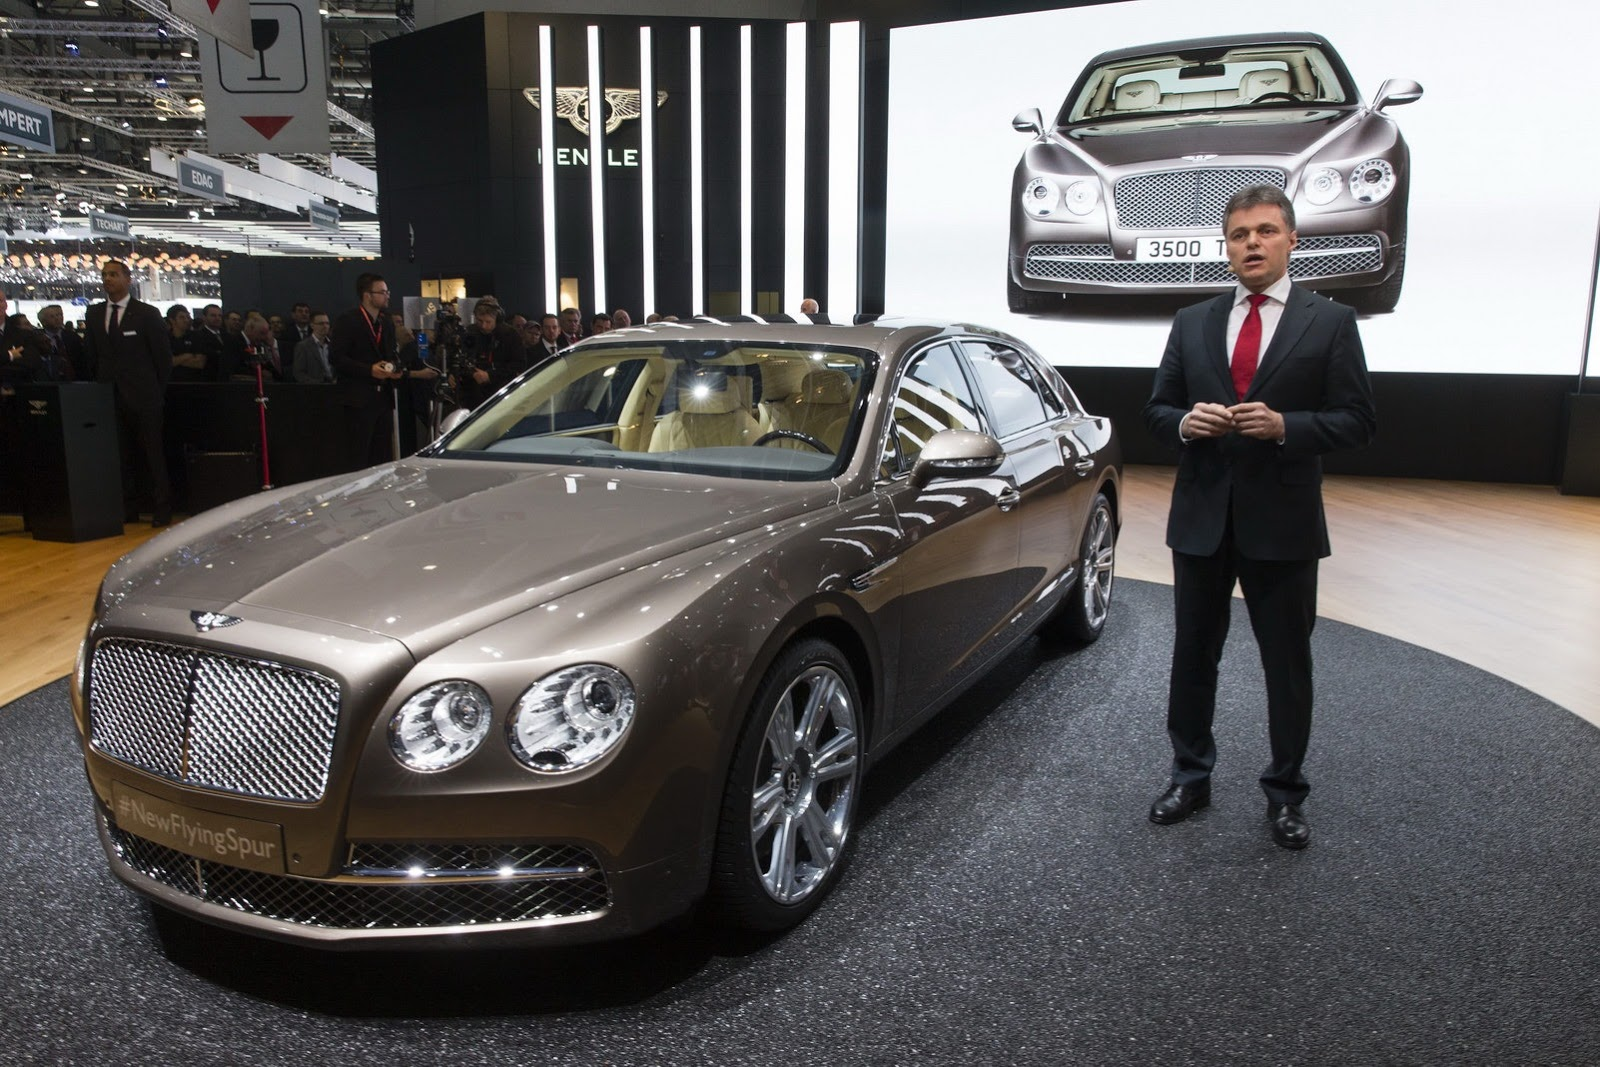 2014 bentley mulsanne information and photos zombiedrive. Cars Review. Best American Auto & Cars Review